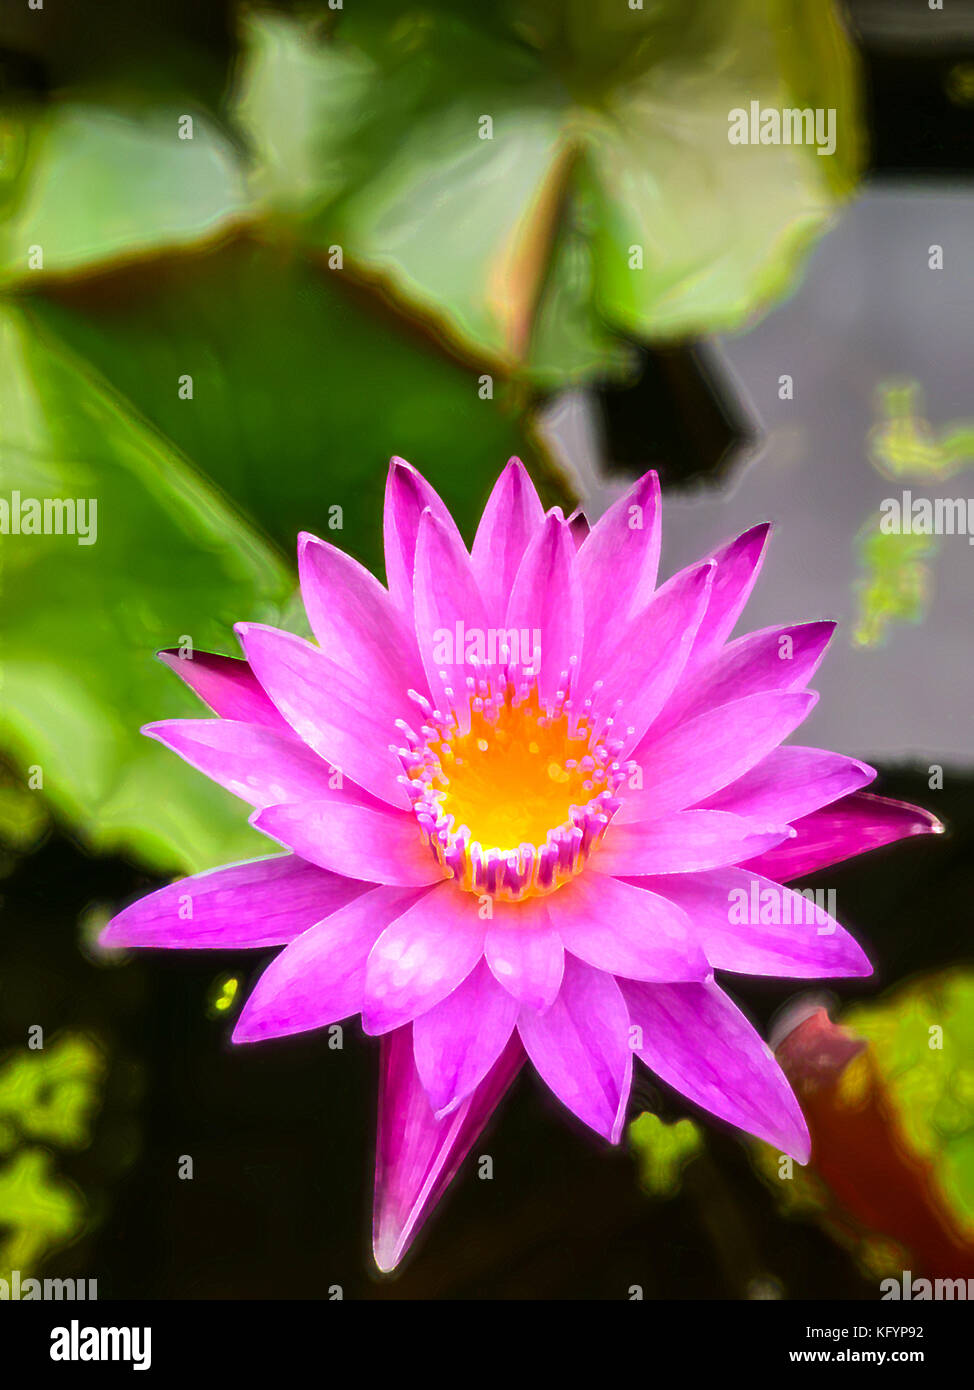 Paint program stock photos paint program stock images alamy a photo of pink lotus process with color paint filter in adobe photoshop program stock izmirmasajfo